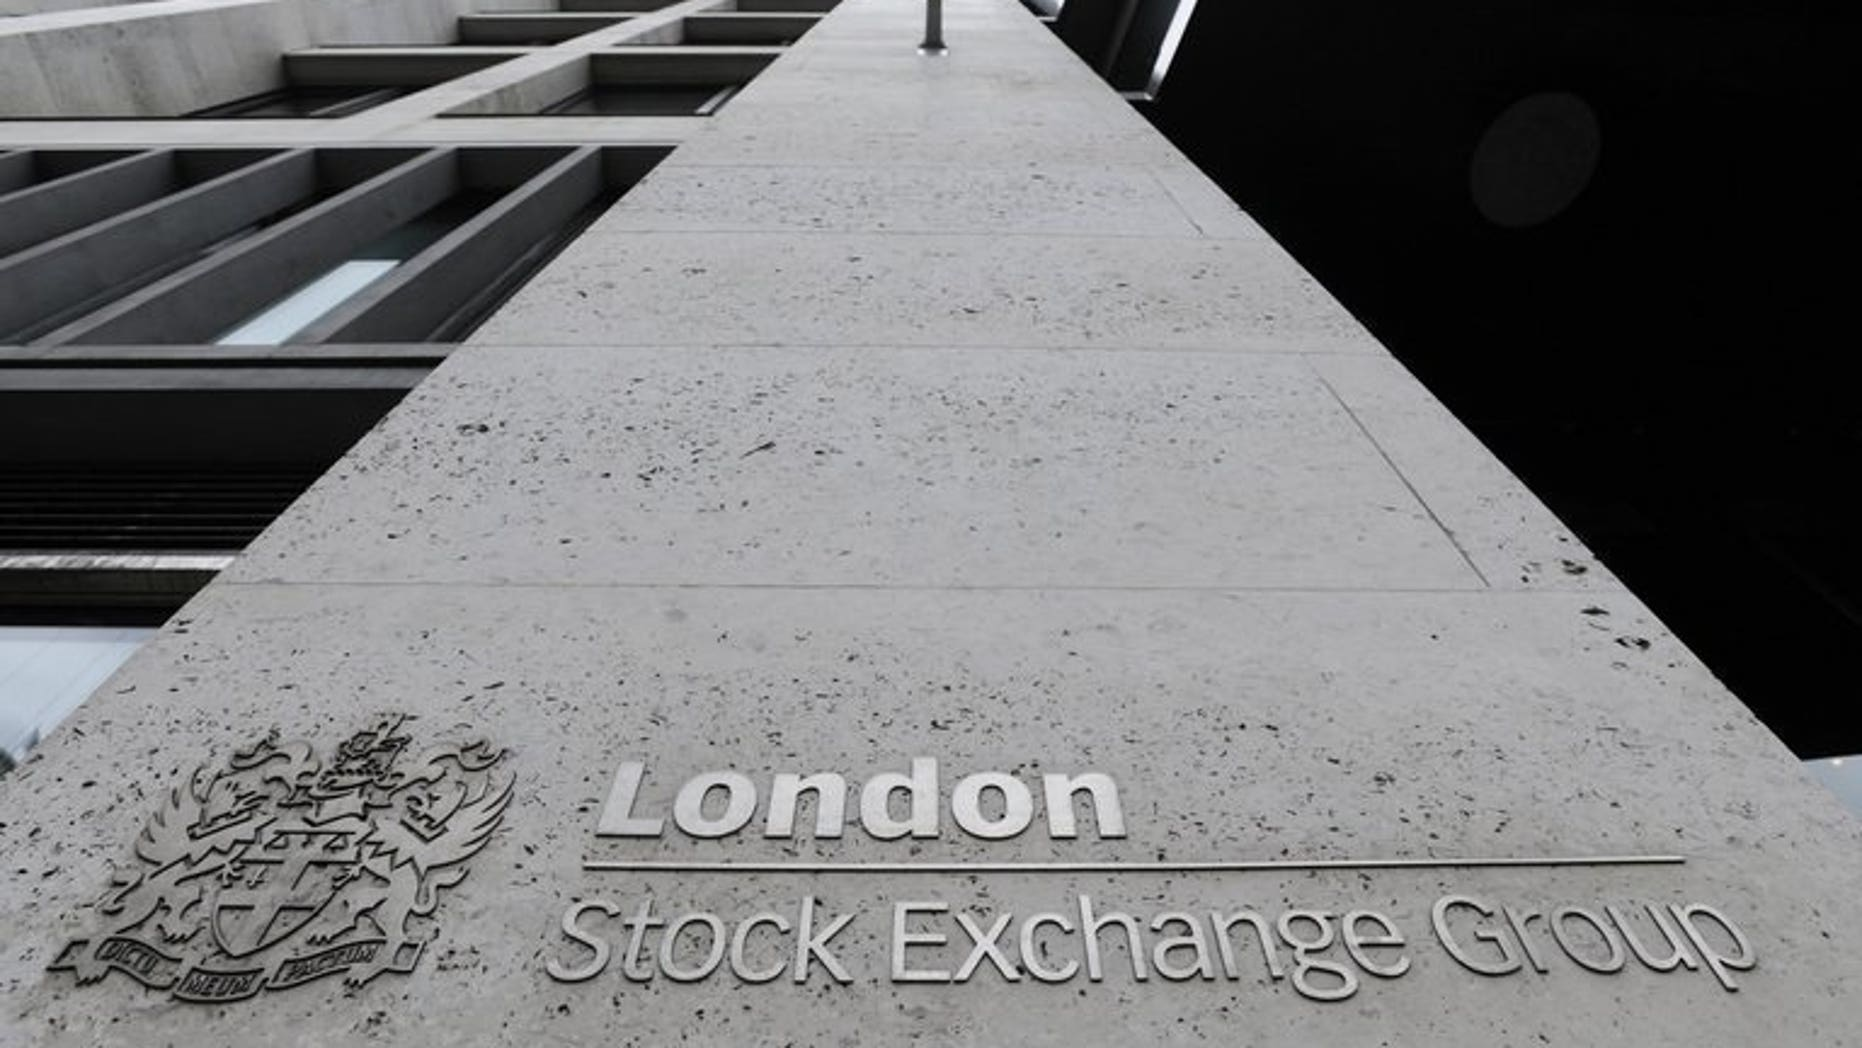 View of the entrance to the London Stock Exchange, on September 22, 2011. London equities rose strongly in opening deals on Thursday, joining a global rally after the US Federal Reserve surprised investors and kept its vast stimulus policy intact.